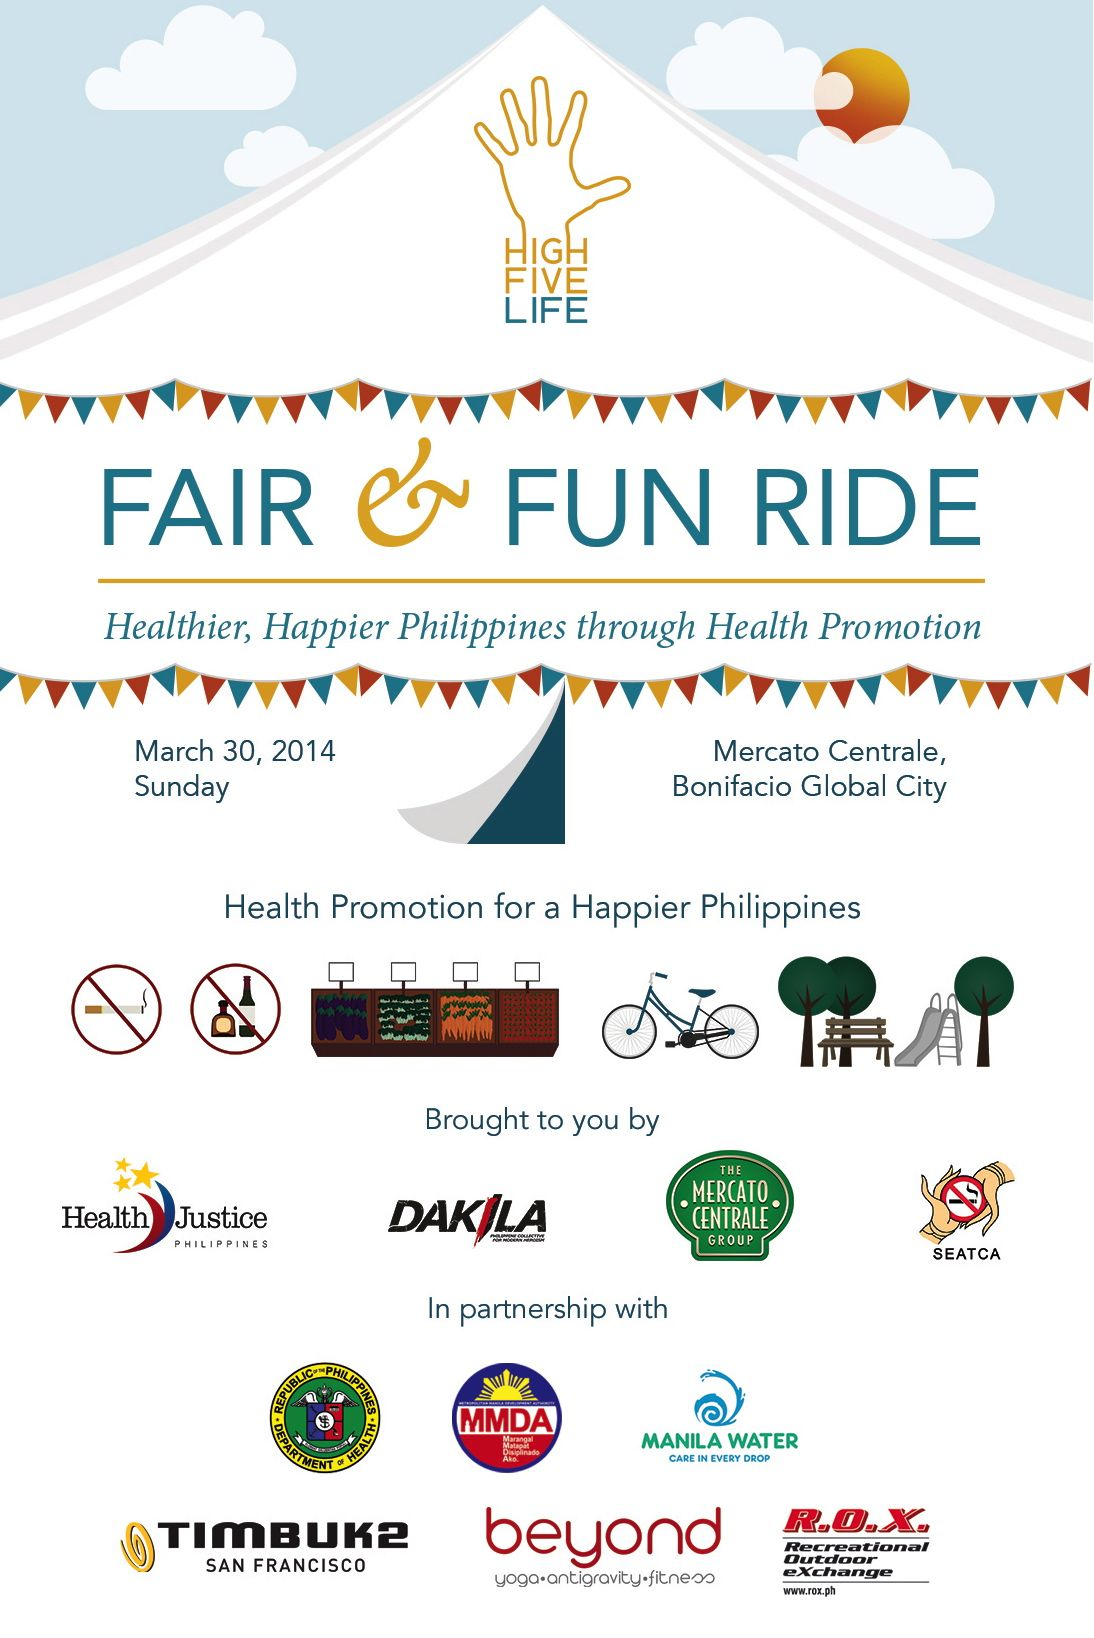 high5life-fair-fun-ride-event-2014-poster